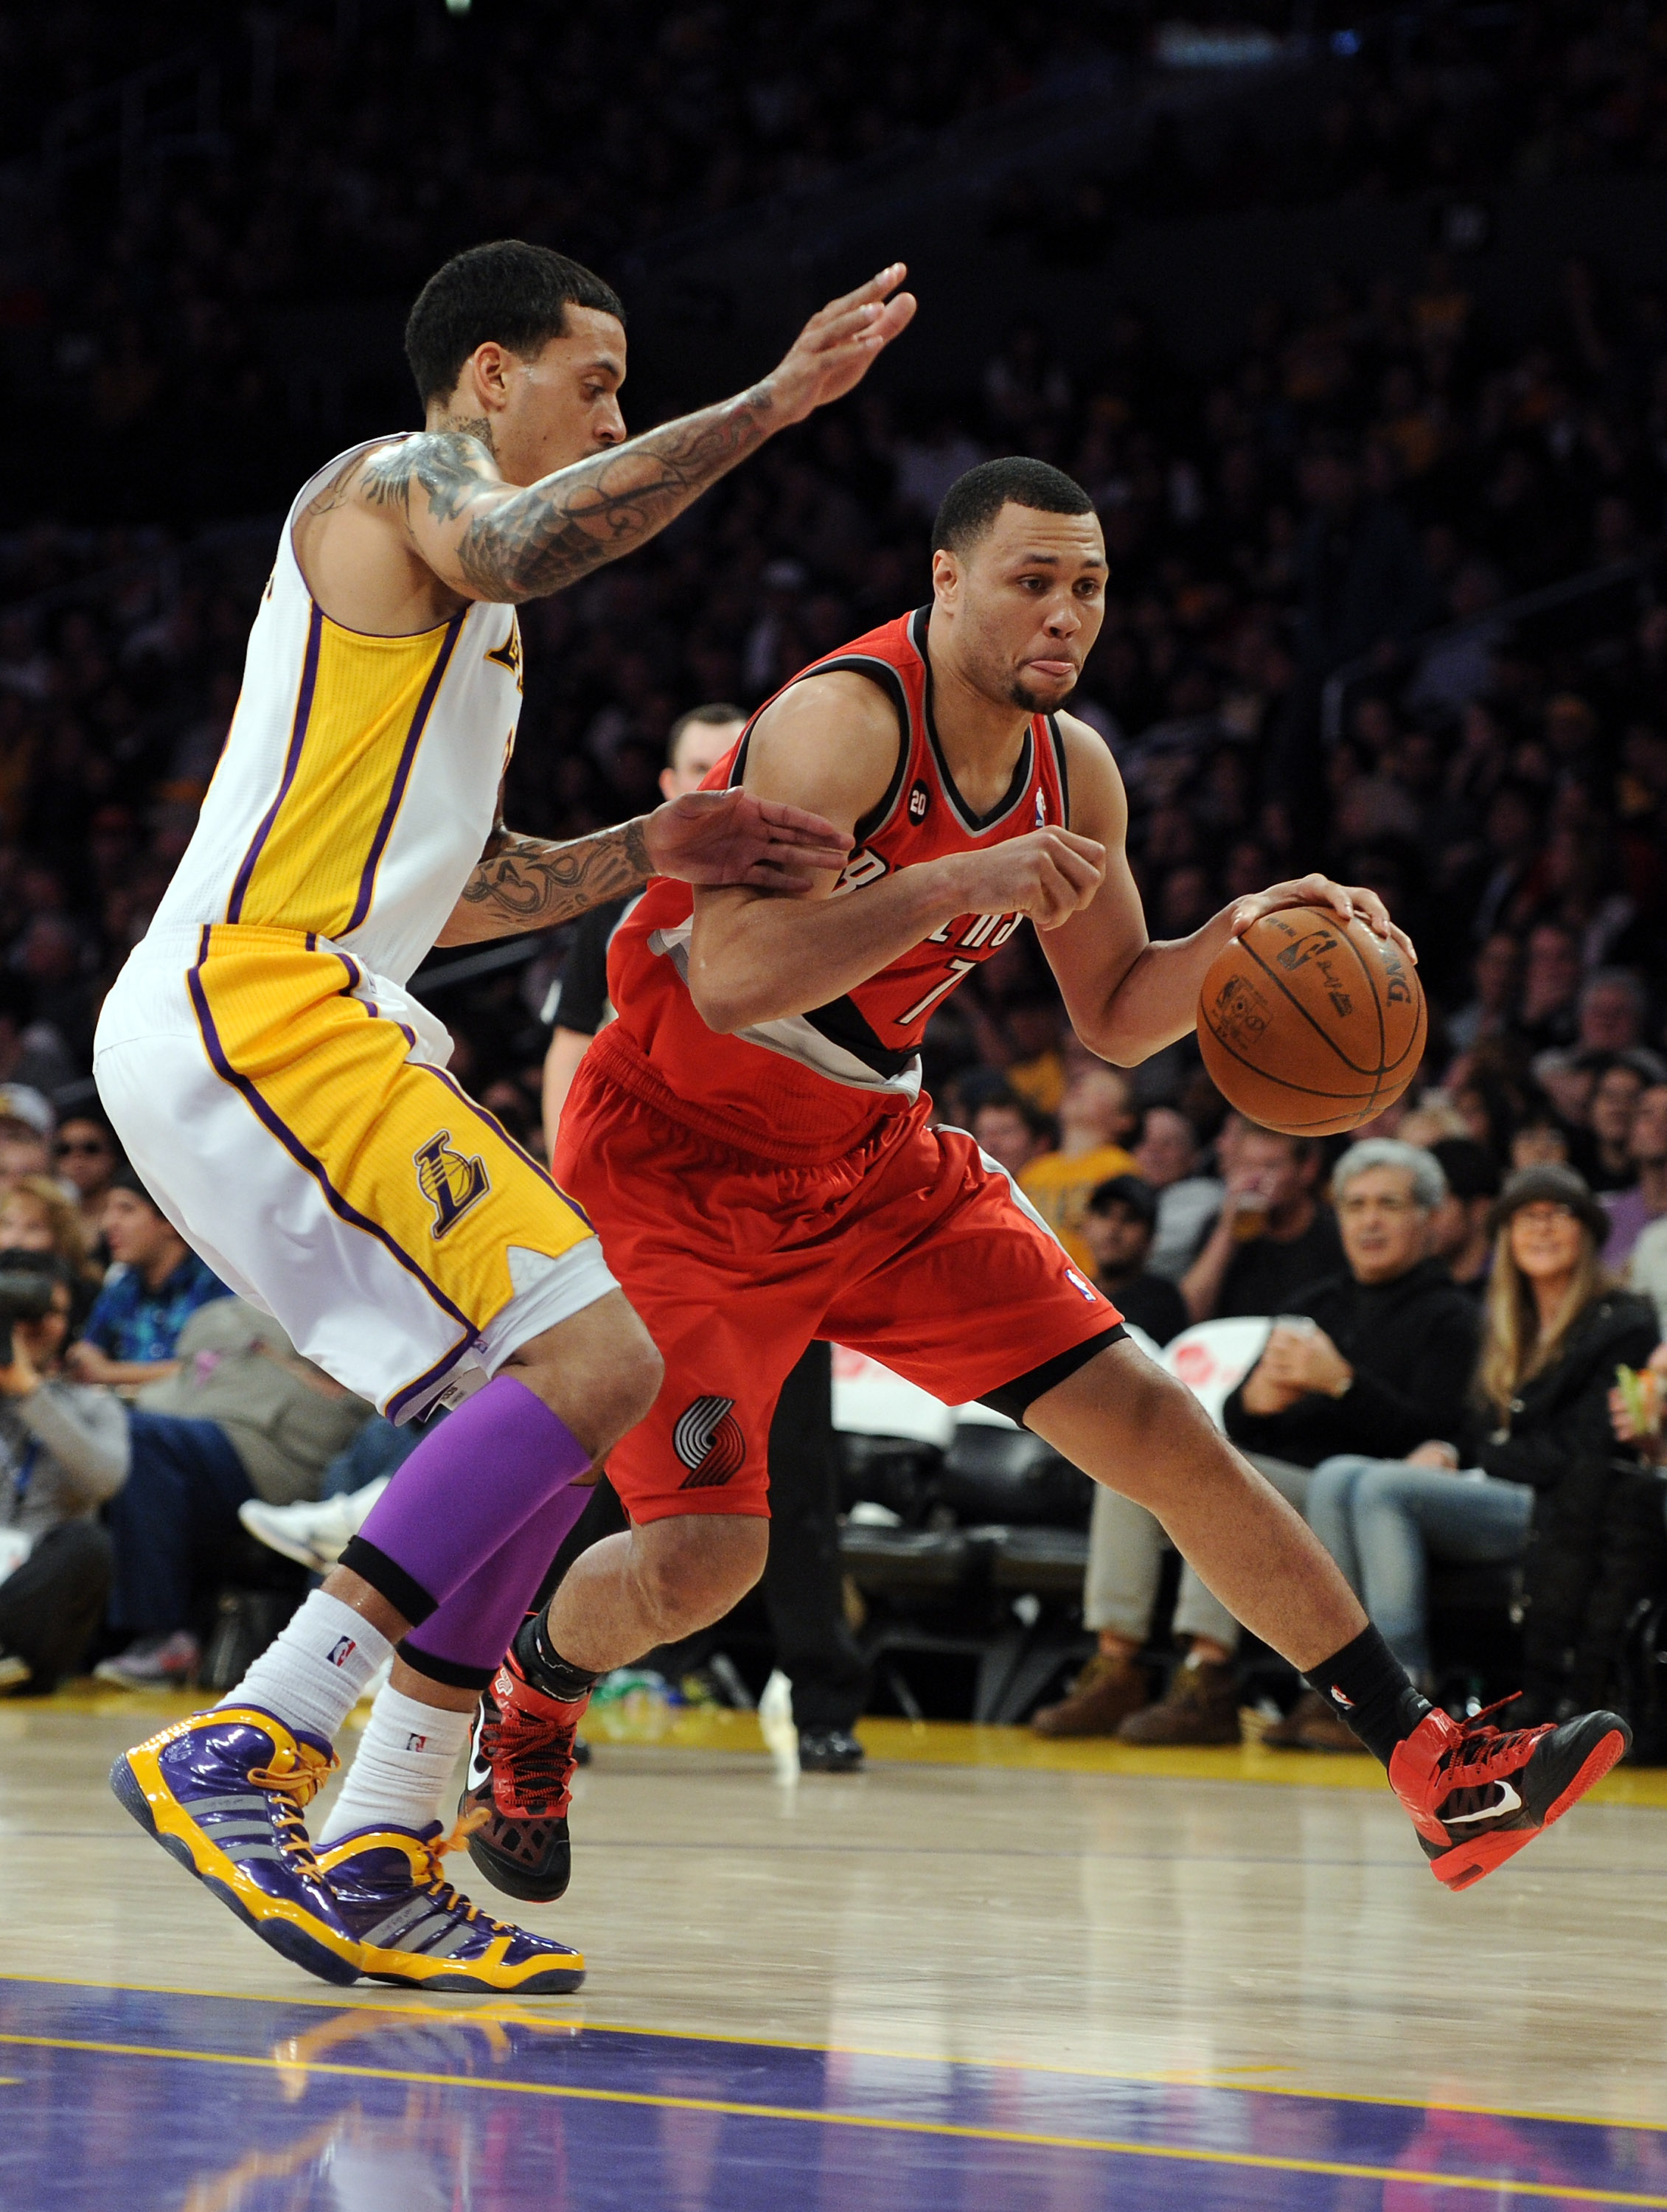 LOS ANGELES, CA - MARCH 20:  Brandon Roy #7 of the Portland Trail Blazers dribbles as he is defended by Matt Barnes #9 of the Los Angeles Lakers at the Staples Center on March 20, 2011 in Los Angeles, California.  NOTE TO USER: User expressly acknowledges